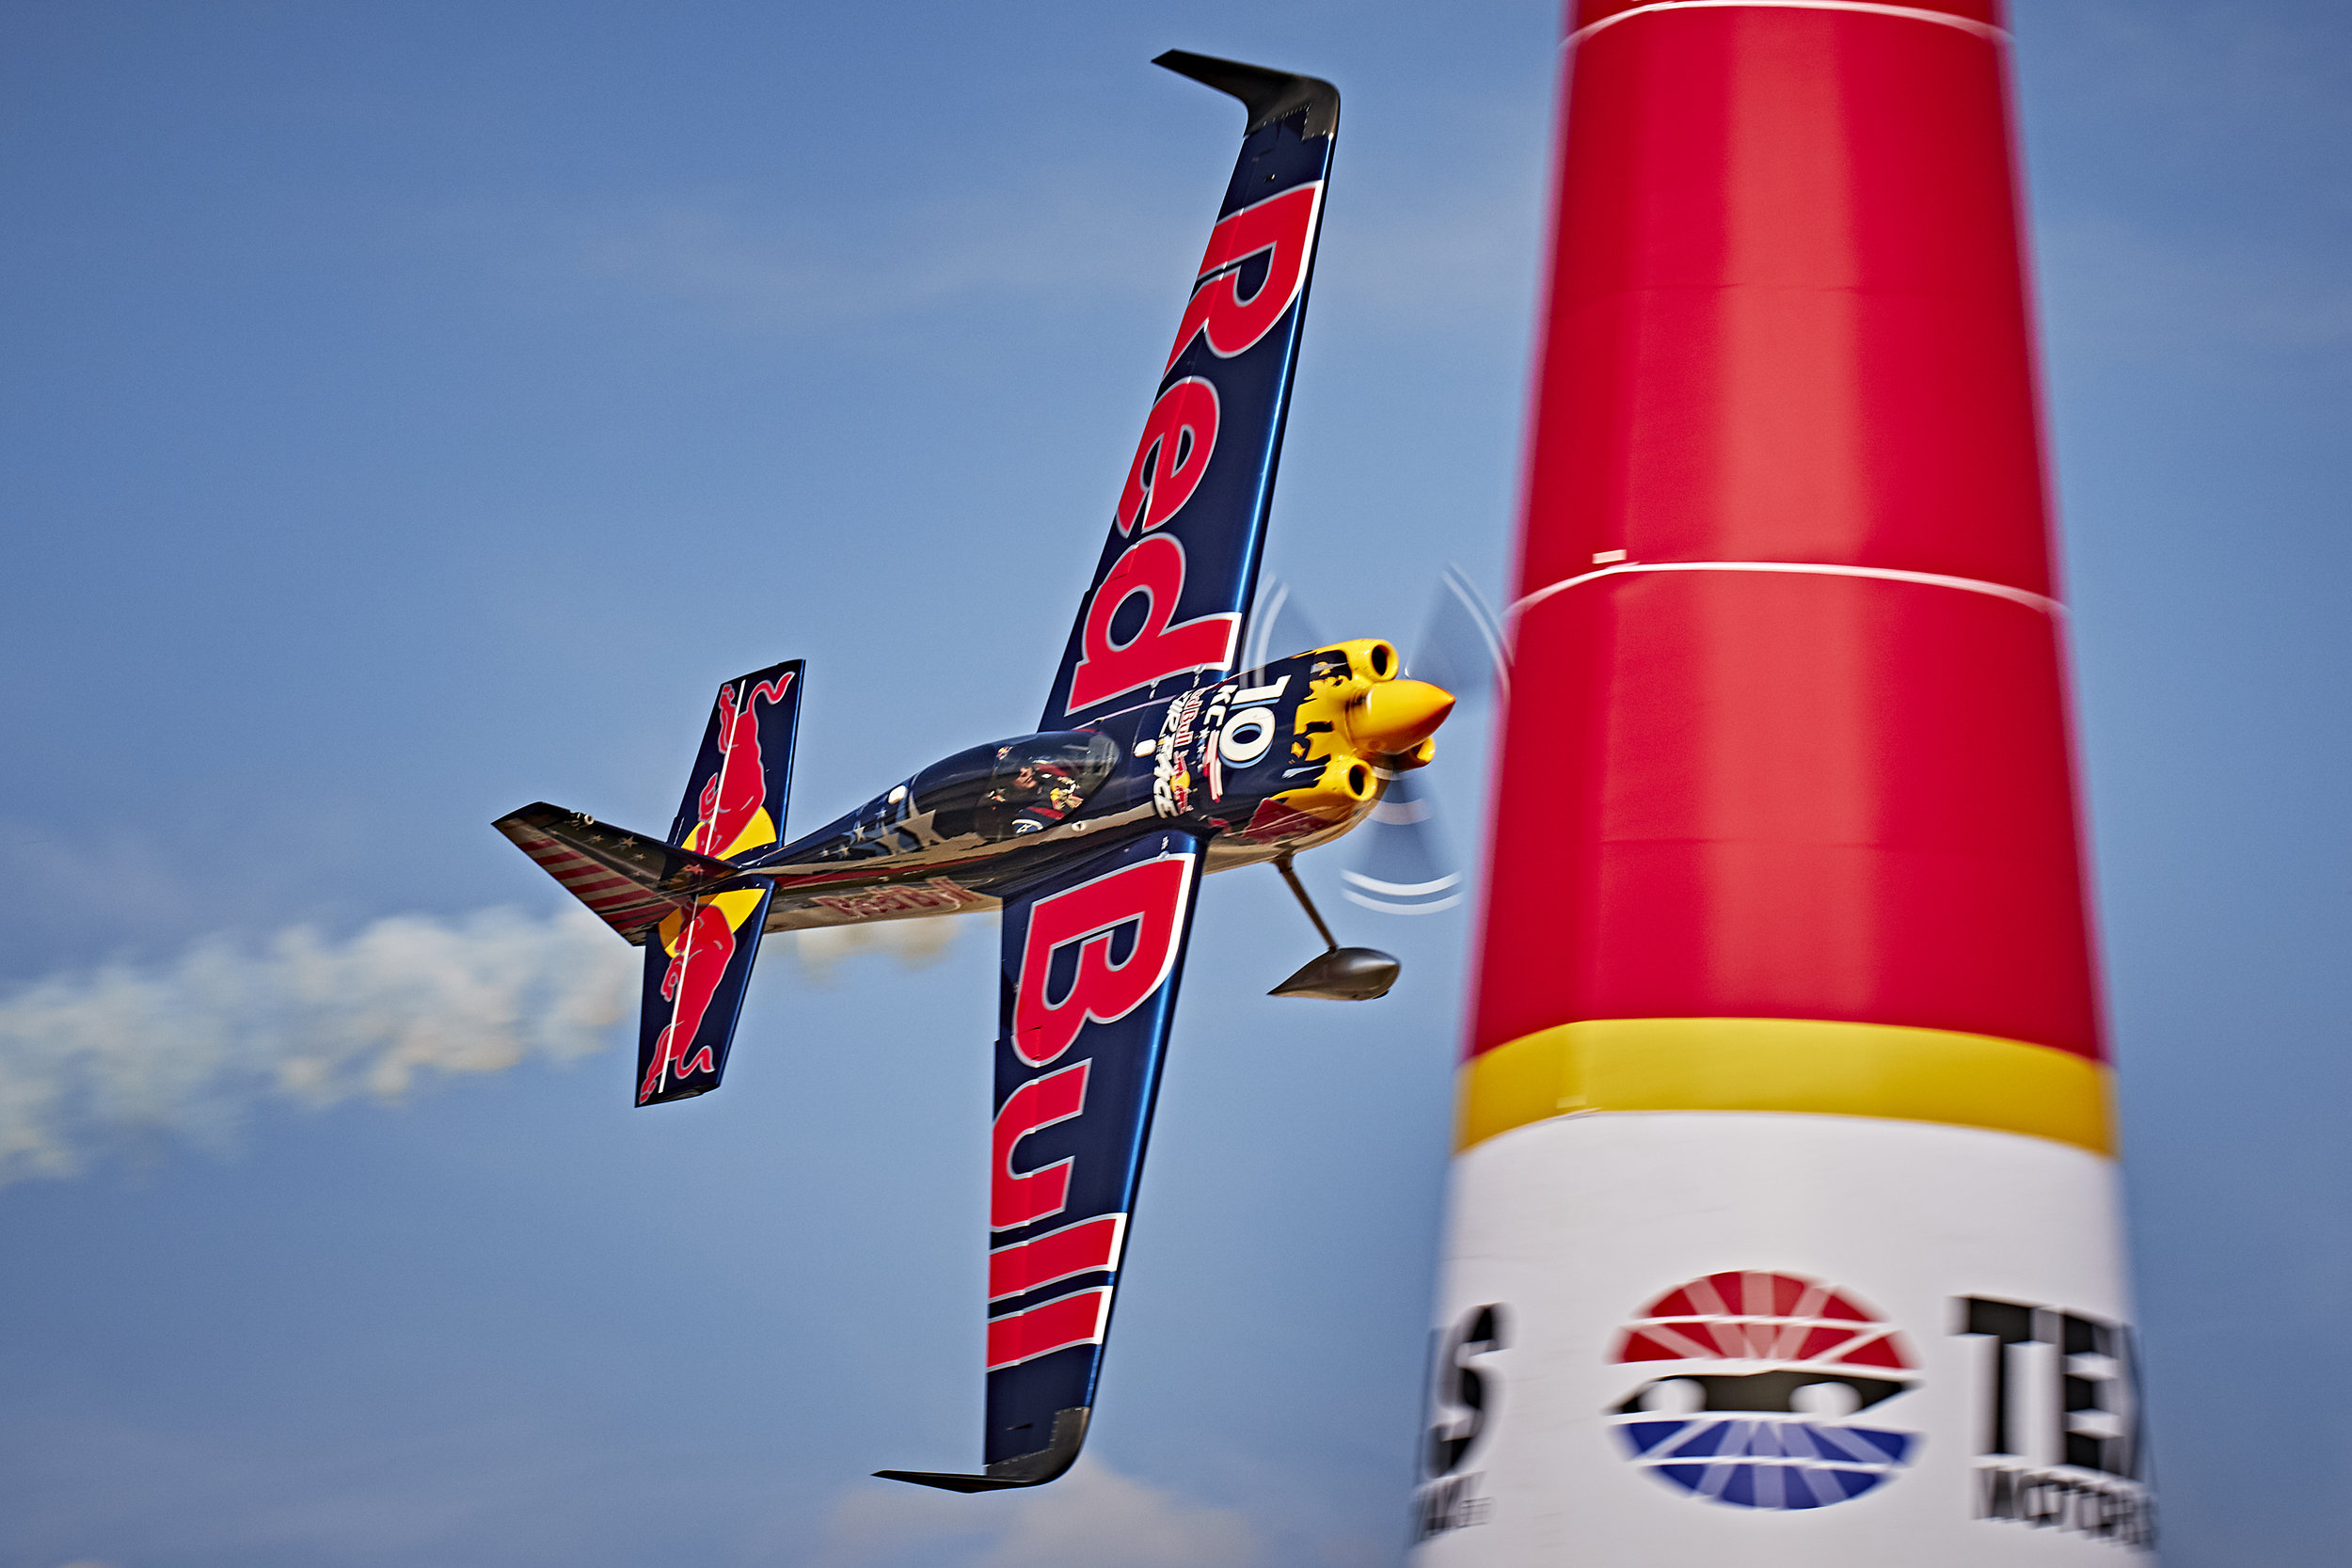 Red Bull Air Races Not to Continue Beyond 2019 Season